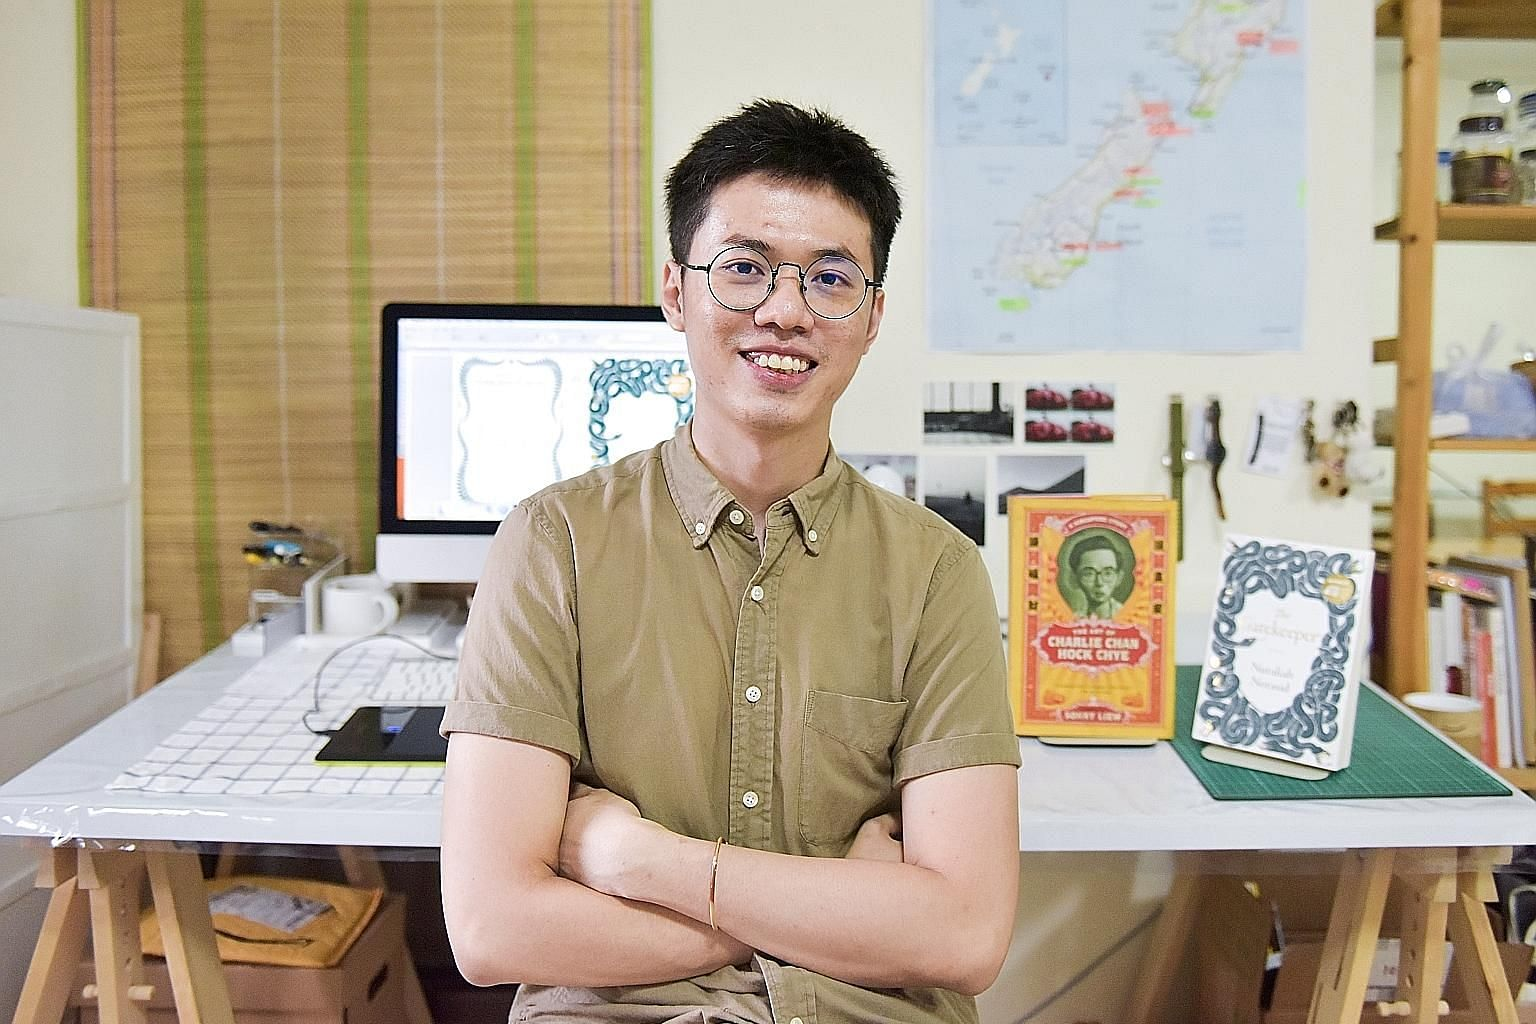 Malaysian Yong Wen Yeu (above) won the Singapore Book Publishers Association's Best Book Cover Design prize twice - in 2016 for the special edition cover of Sonny Liew's graphic novel The Art Of Charlie Chan Hock Chye and last year for The Gatekeeper